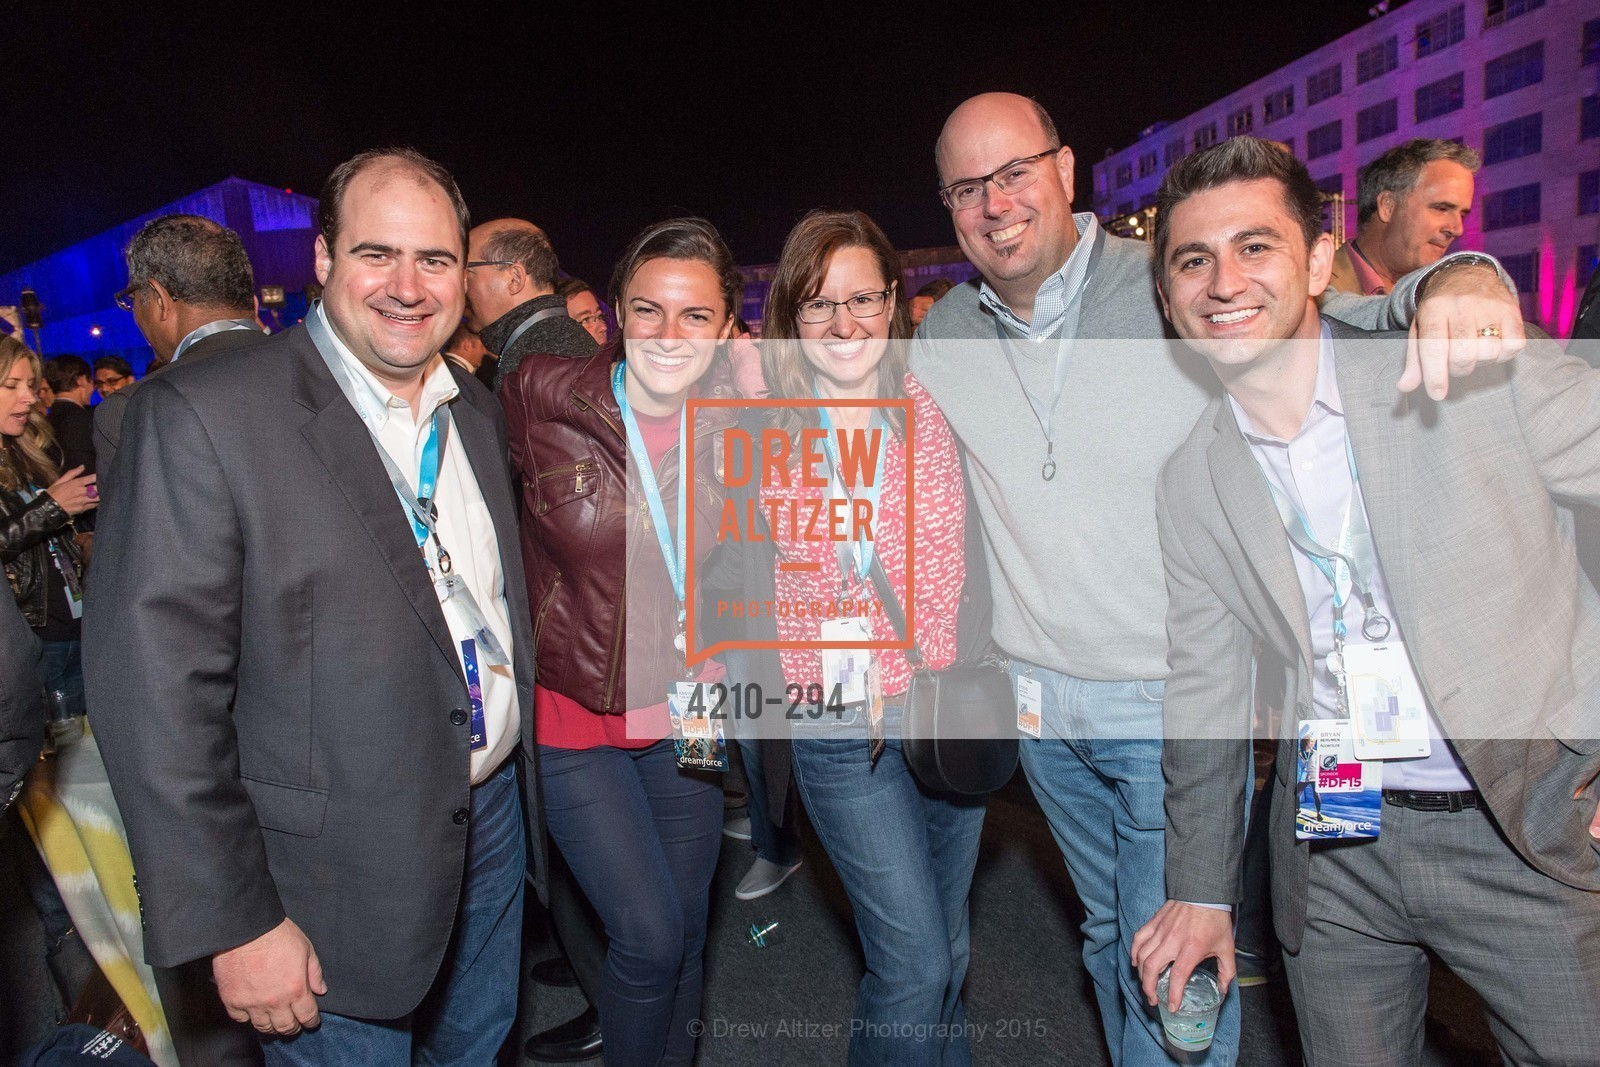 Dan Petrossi, Kristin Tomlinson, Julie Albanese, Steve Santana, Bryan Berumen, The Concert For UCSF Benioff Children's Hospital, Pier 70, September 17th, 2015,Drew Altizer, Drew Altizer Photography, full-service agency, private events, San Francisco photographer, photographer california